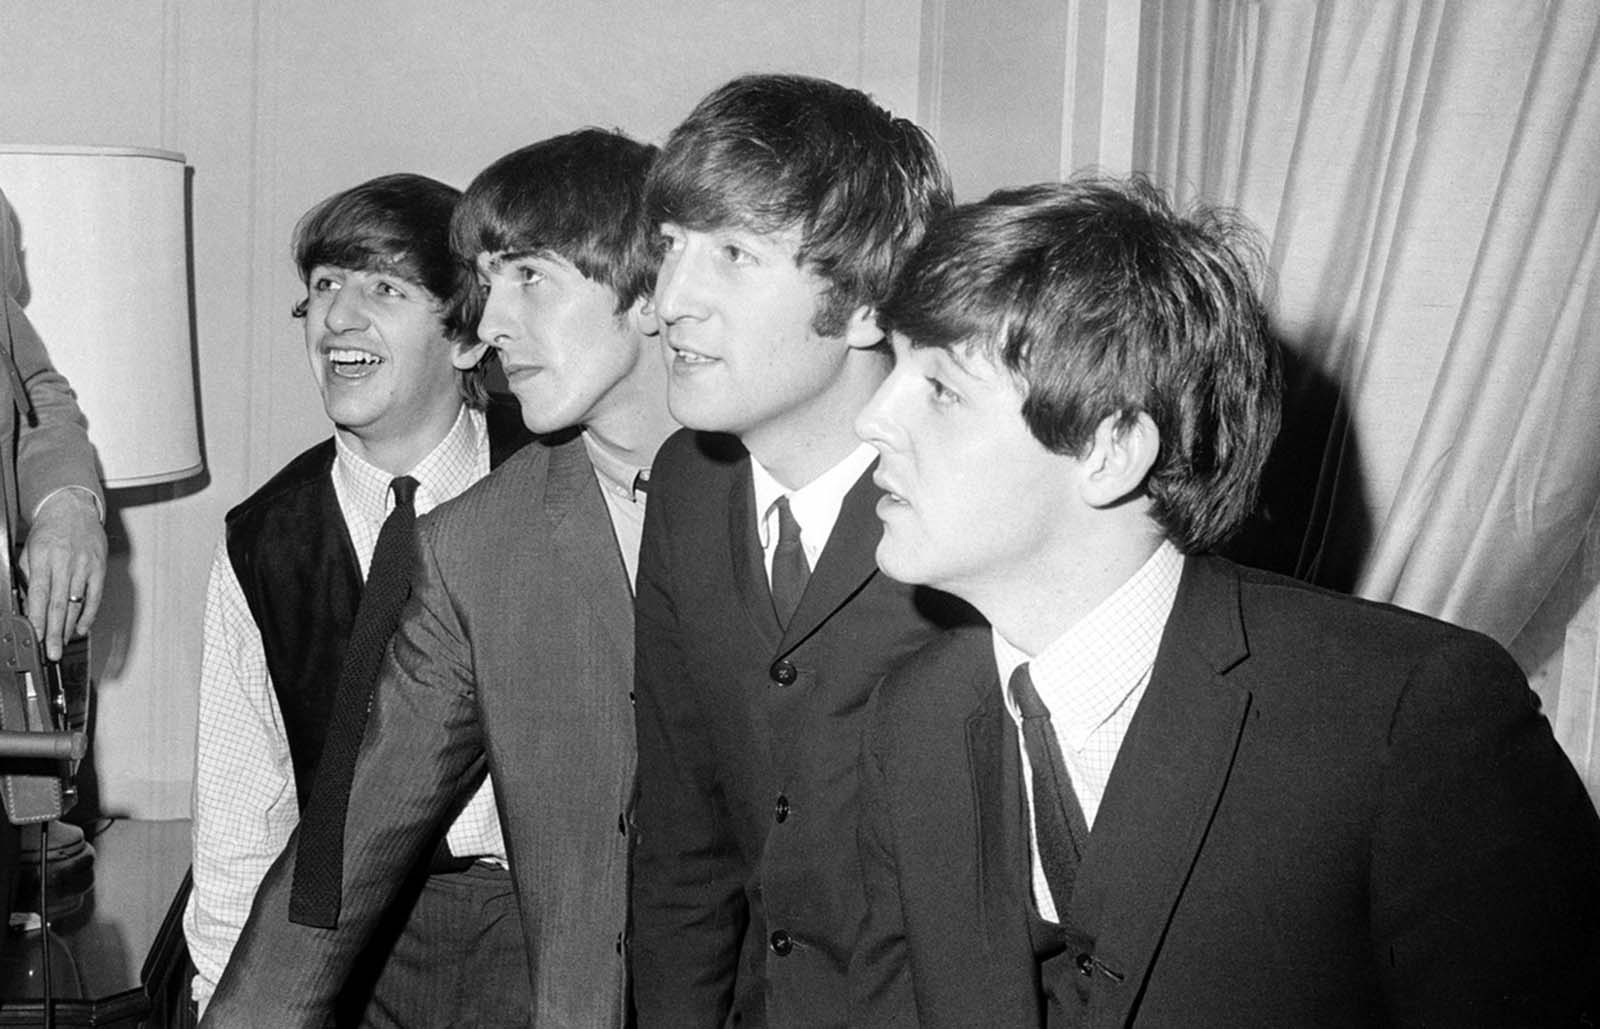 The Beatles, from left, Ringo Starr, George Harrison, John Lennon and Paul McCartney, in their New York hotel after their arrival in the U.S. on February 7, 1964. The British rock group, on their first American tour, was pelted with jelly beans and candy kisses by screaming teen-age fans.